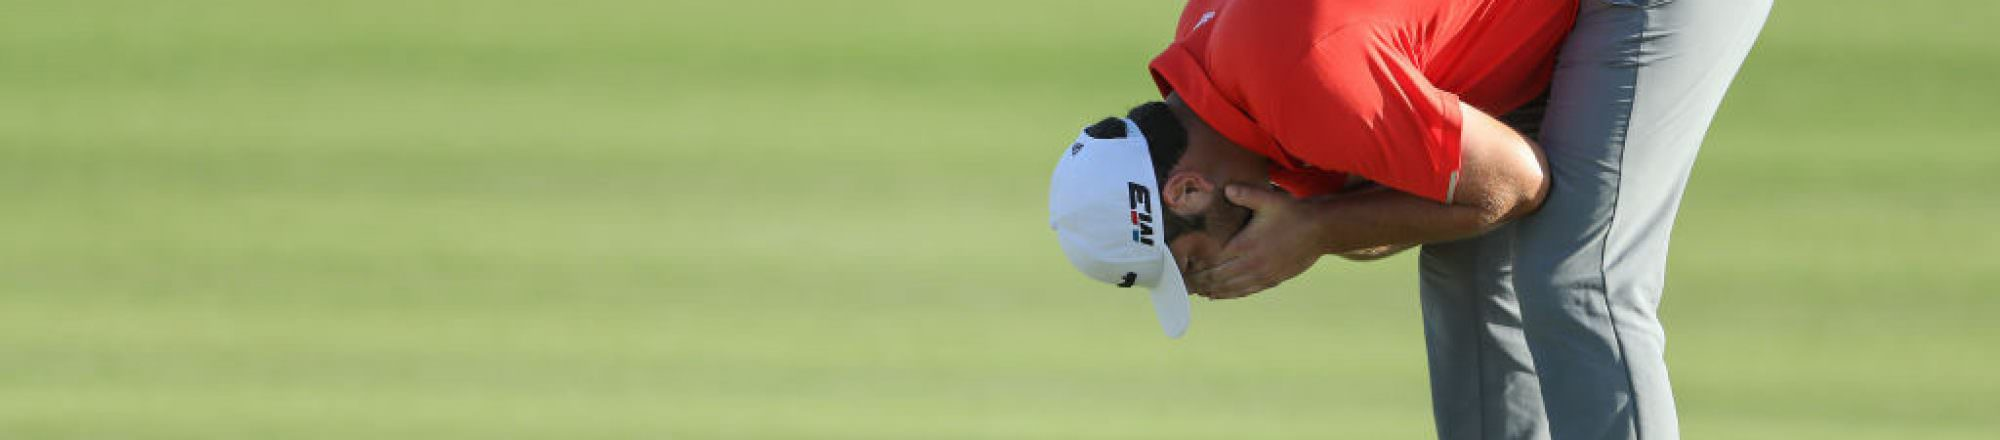 Keep calm and carry on – it will improve your golf and life